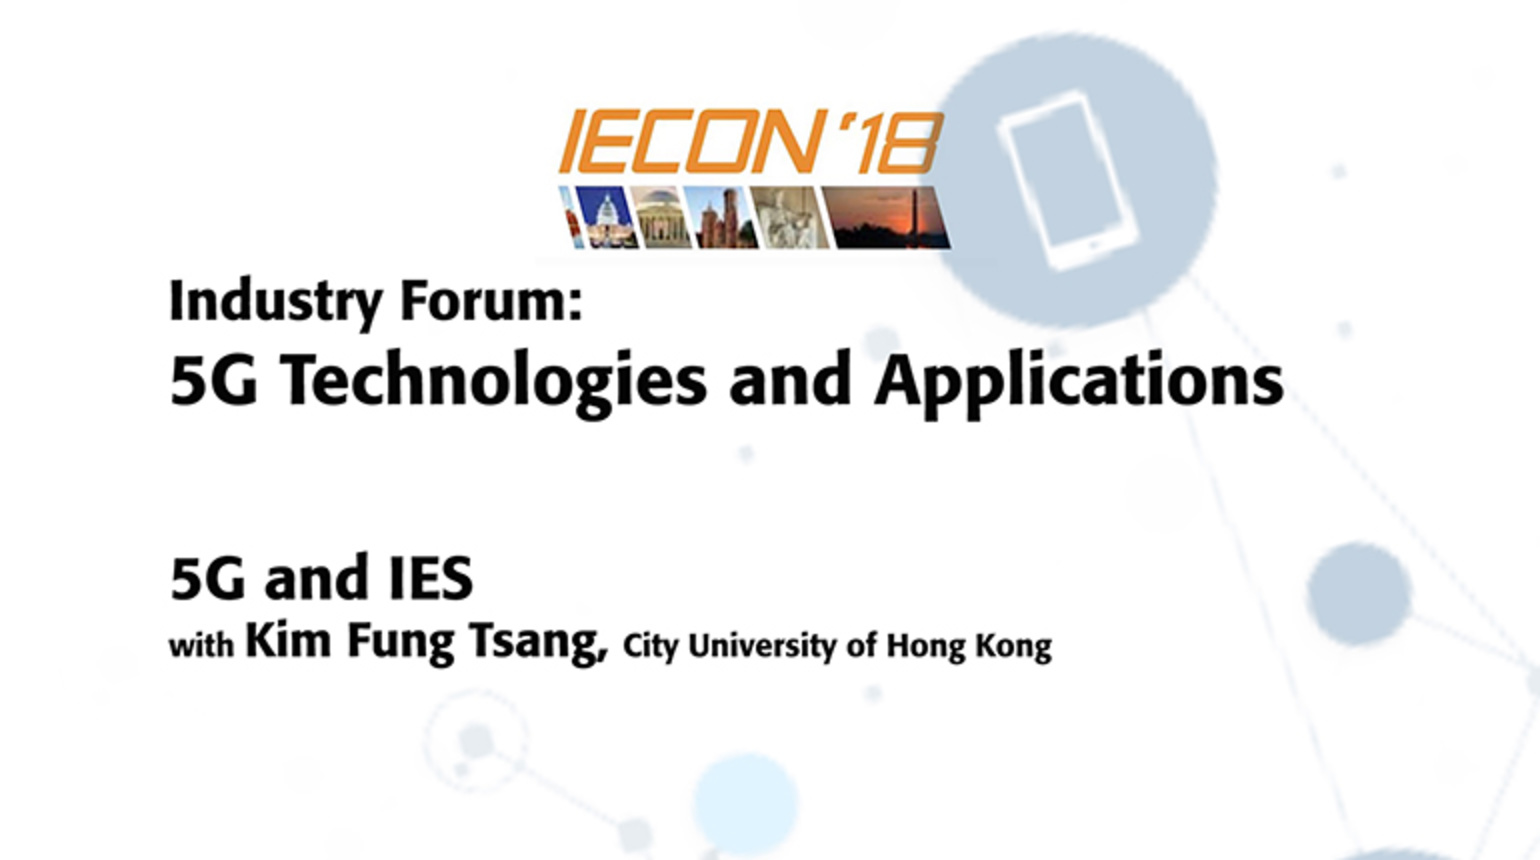 Industry Forum: 5G Technologies and Applications, Kim Fung Tsang - IECON 2018